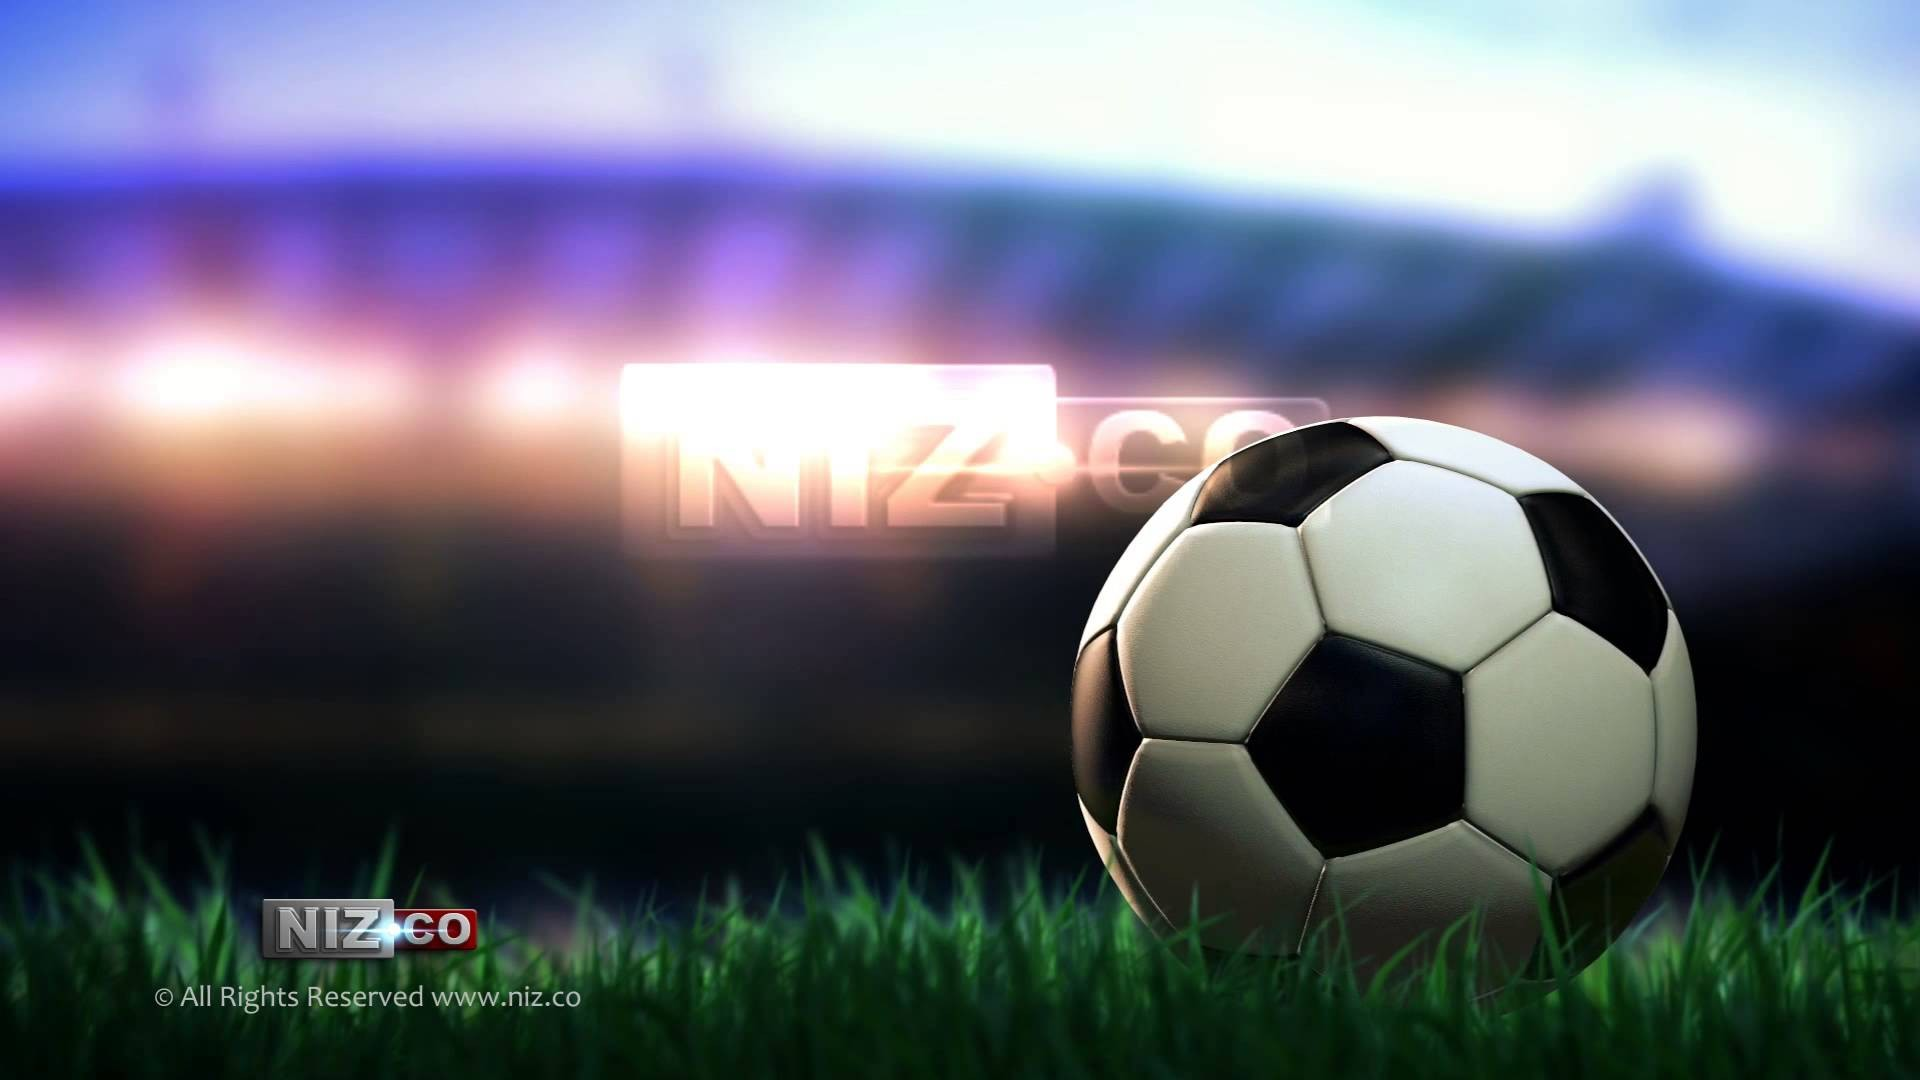 227082-beautiful-soccer-background-1920x